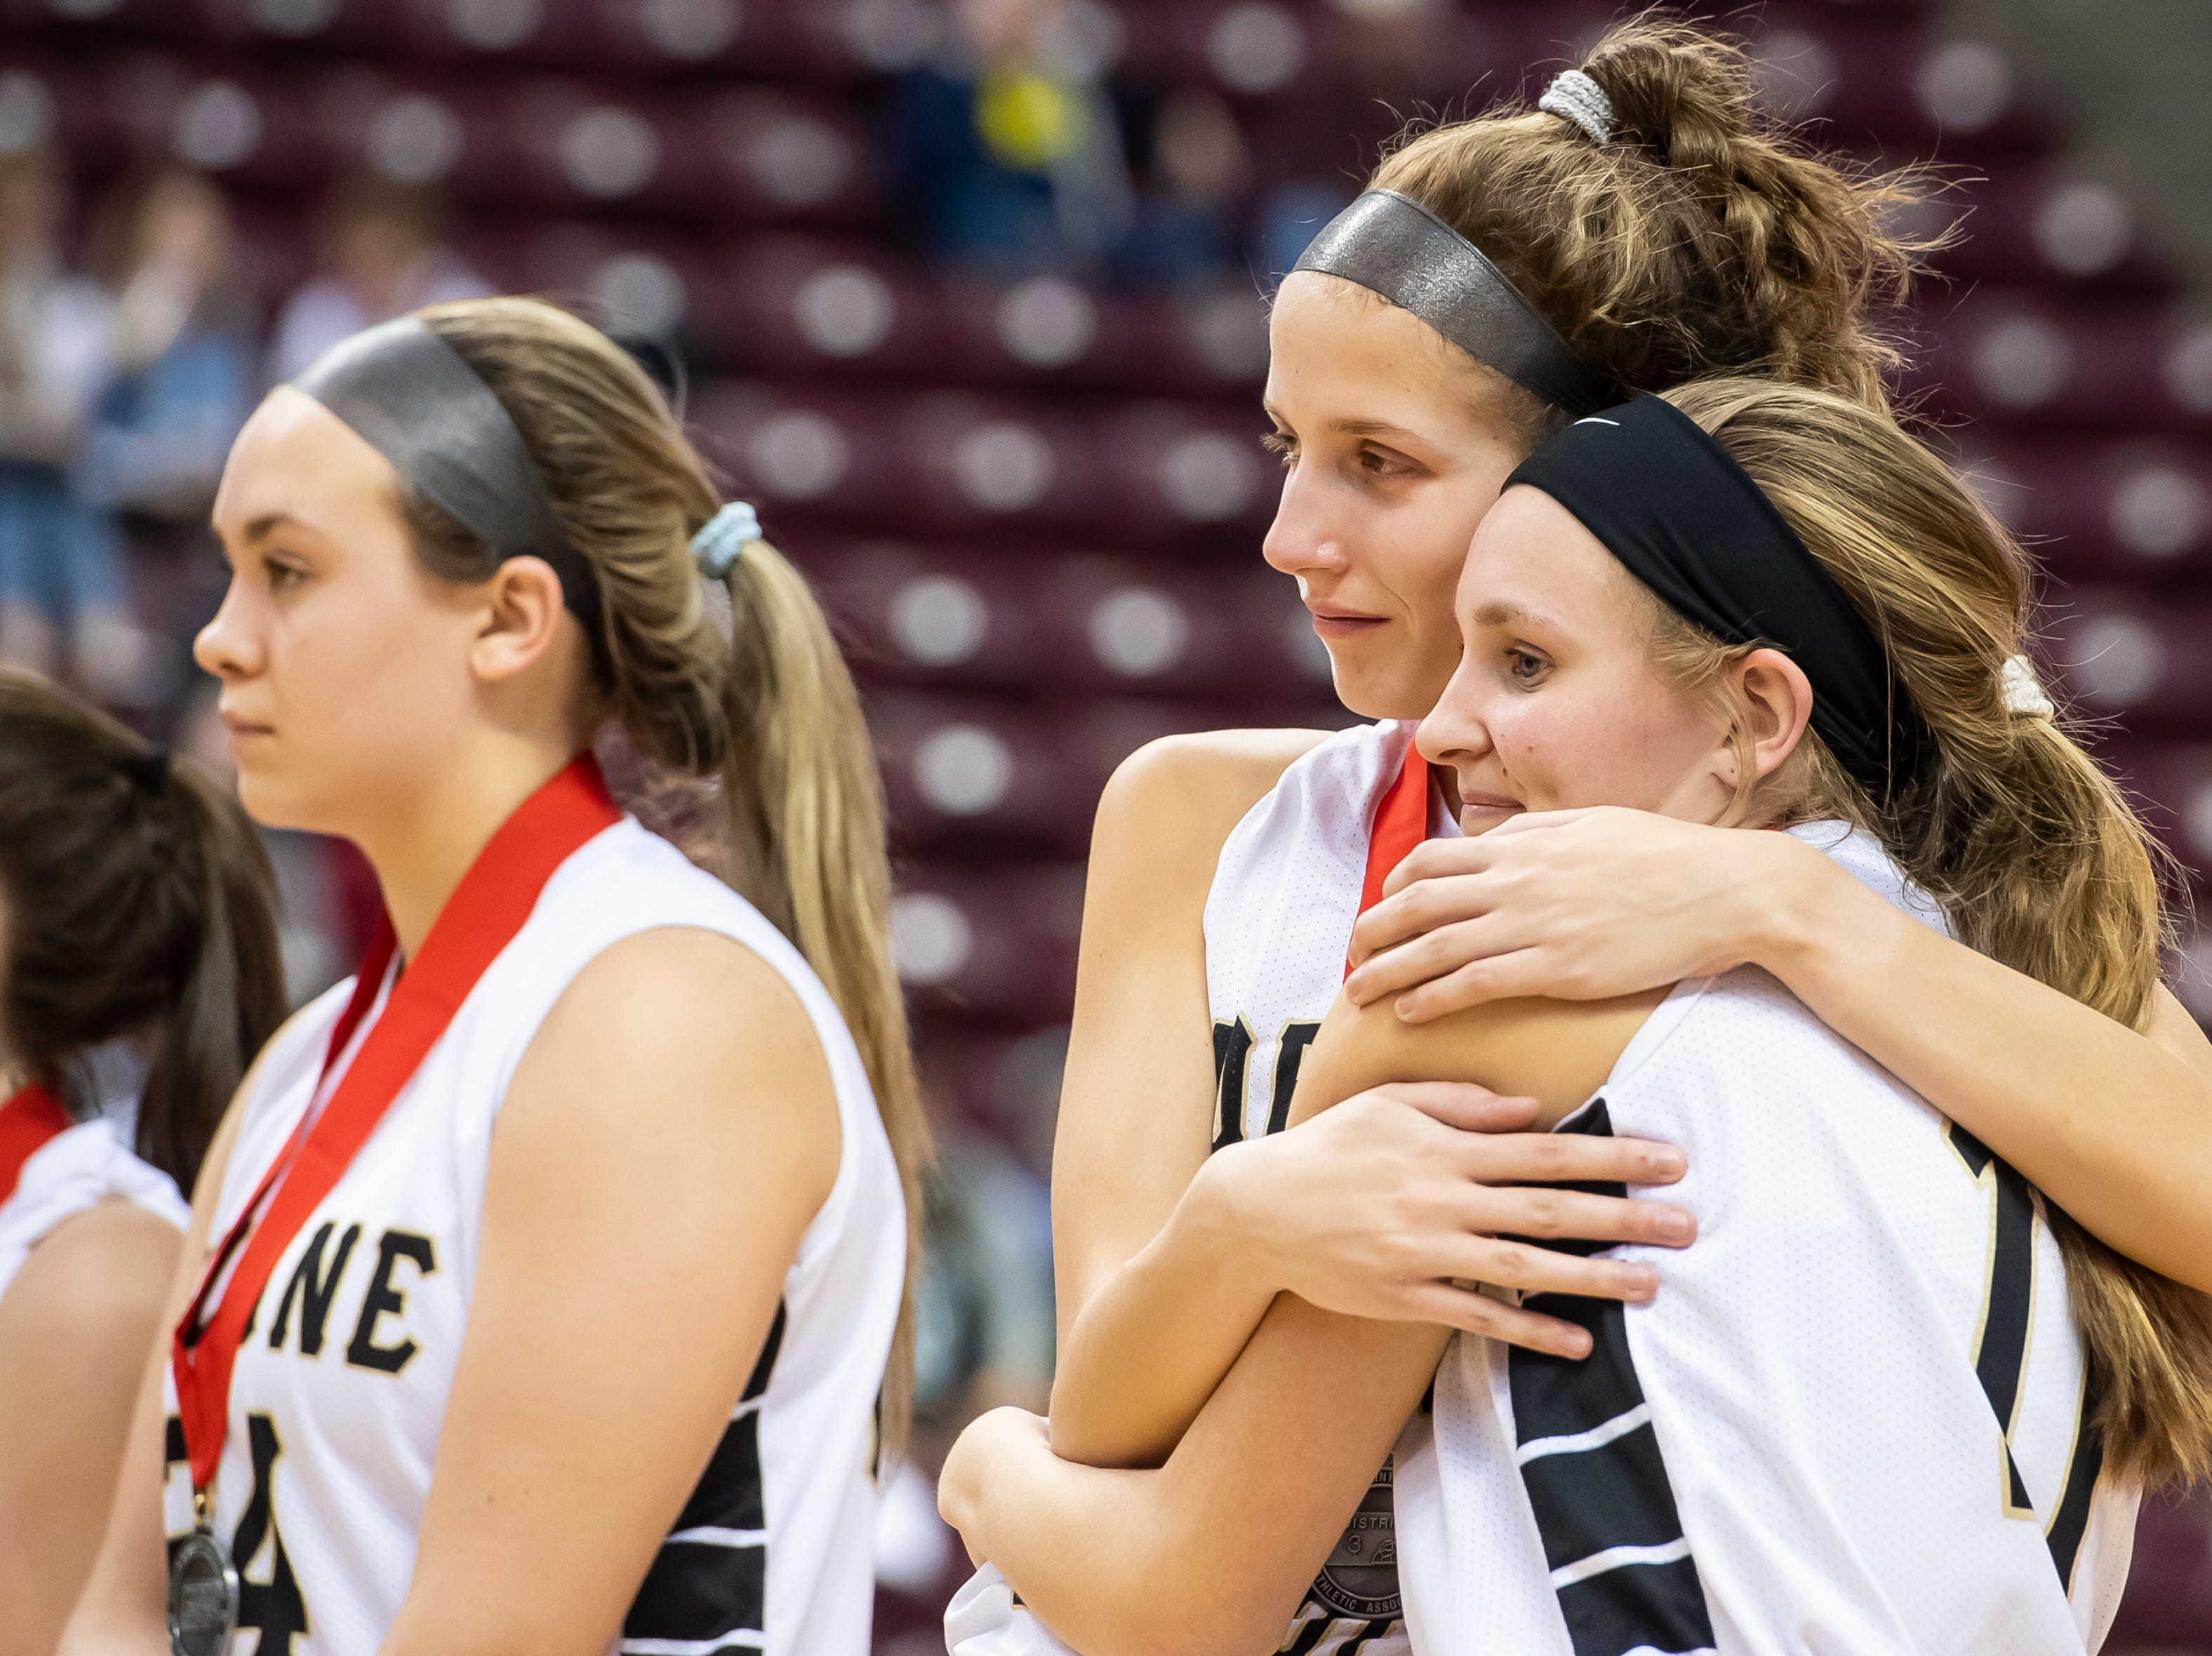 Delone Catholic's Maggie Wells, back, and Riley Vingsen hug after falling to Trinity in the District 3 3A girls championship game against Trinity at the Giant Center in Hershey Wednesday, Feb. 27, 2019. The Squirettes fell 44-33.